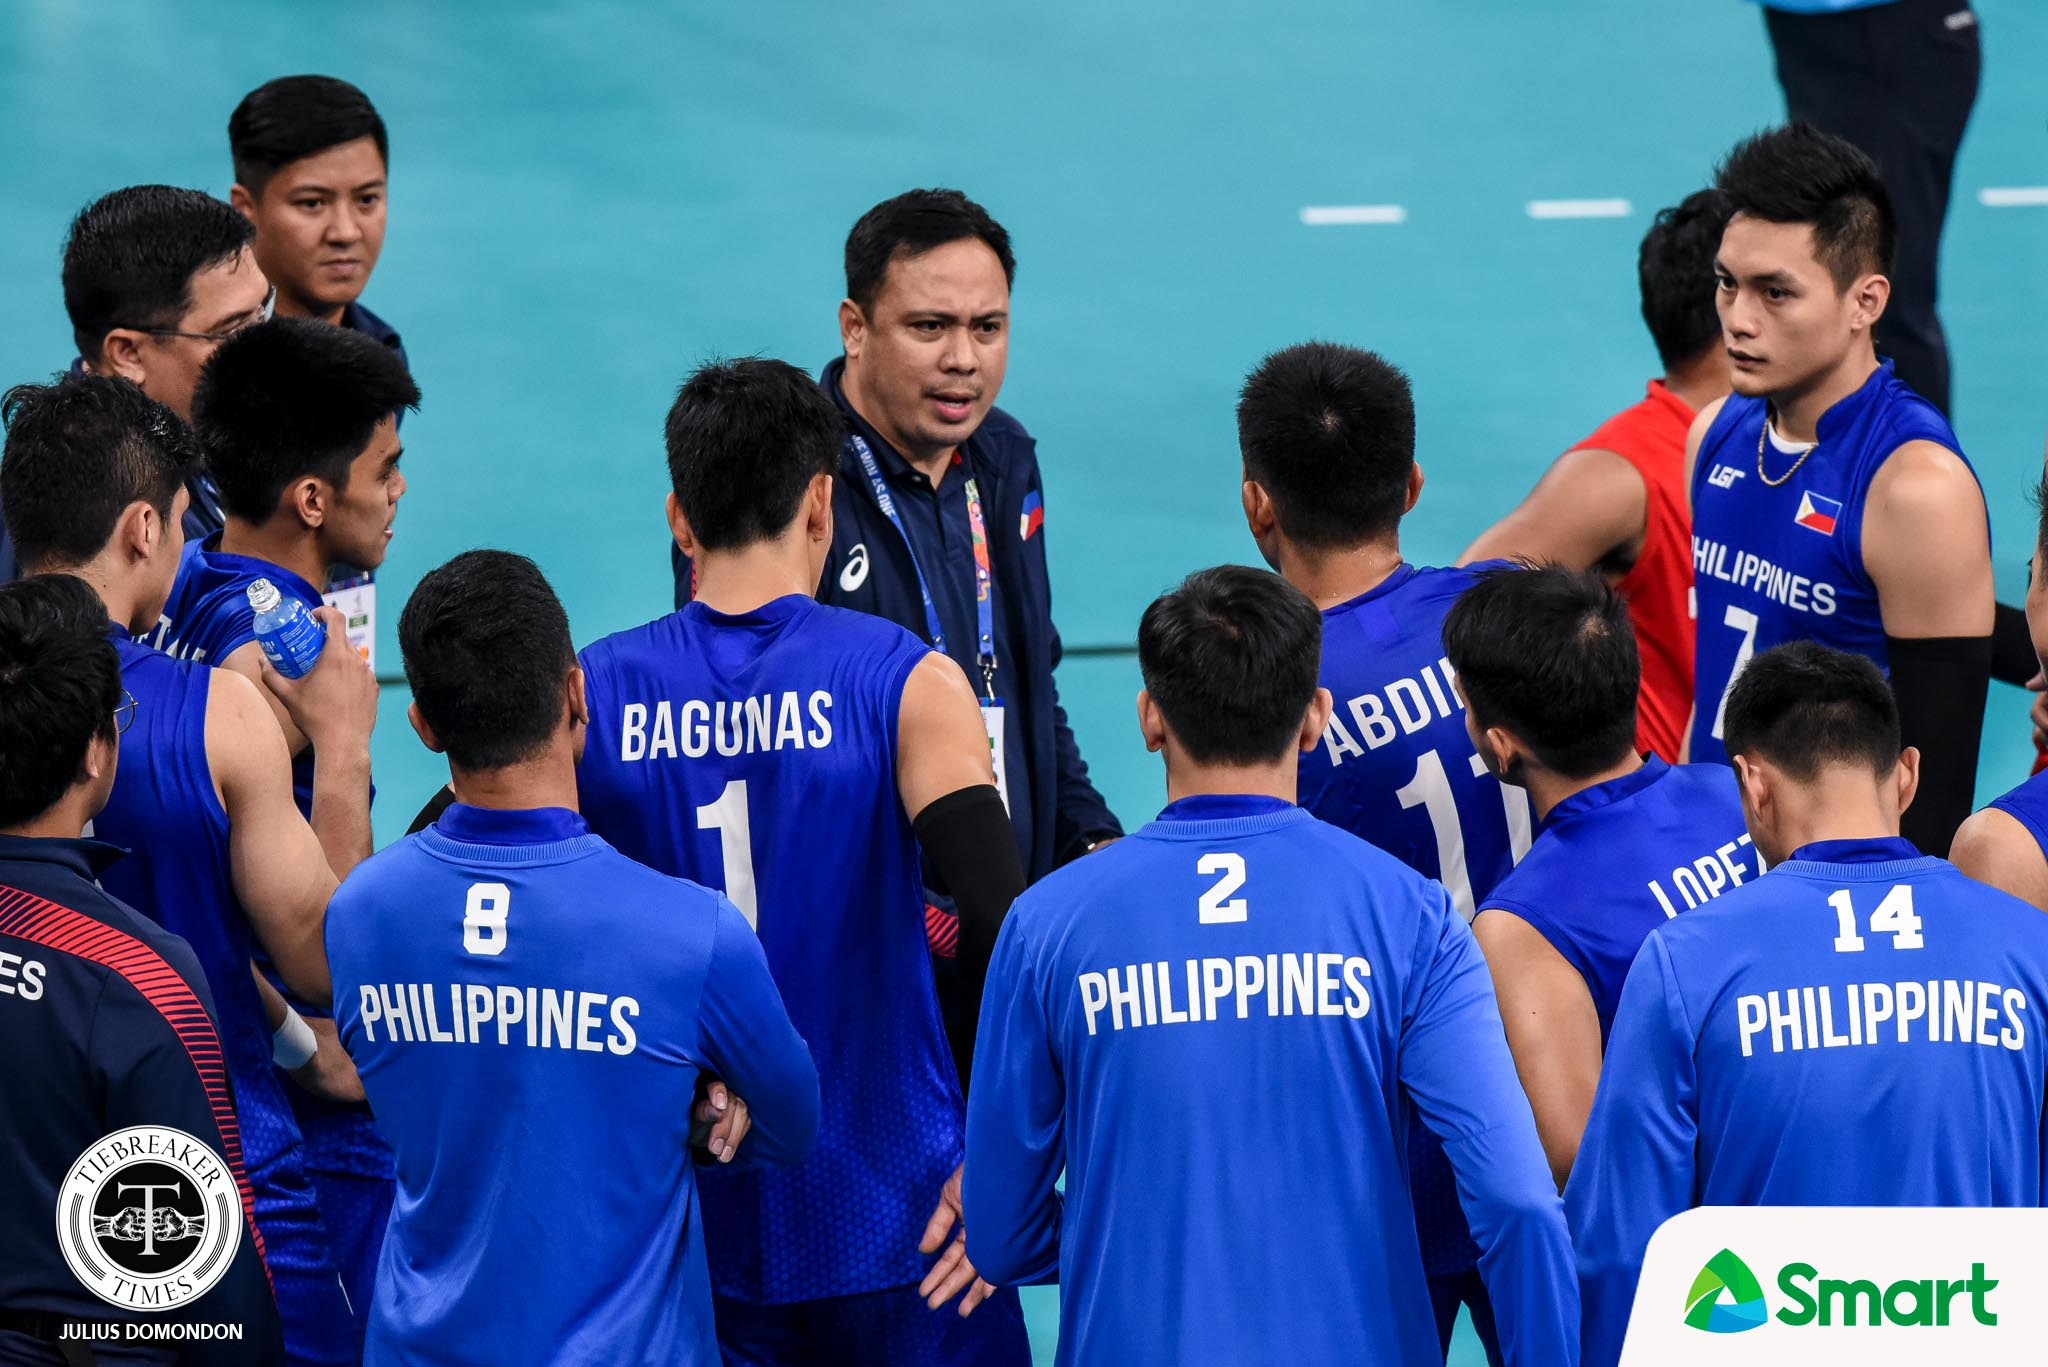 2019-SEA-Games-Mens-Volleyball-Philippines-Alinsunurin Bagunas says he felt 'goosebumps' as Alinsunurin makes him shoo-in for NT News Volleyball  - philippine sports news